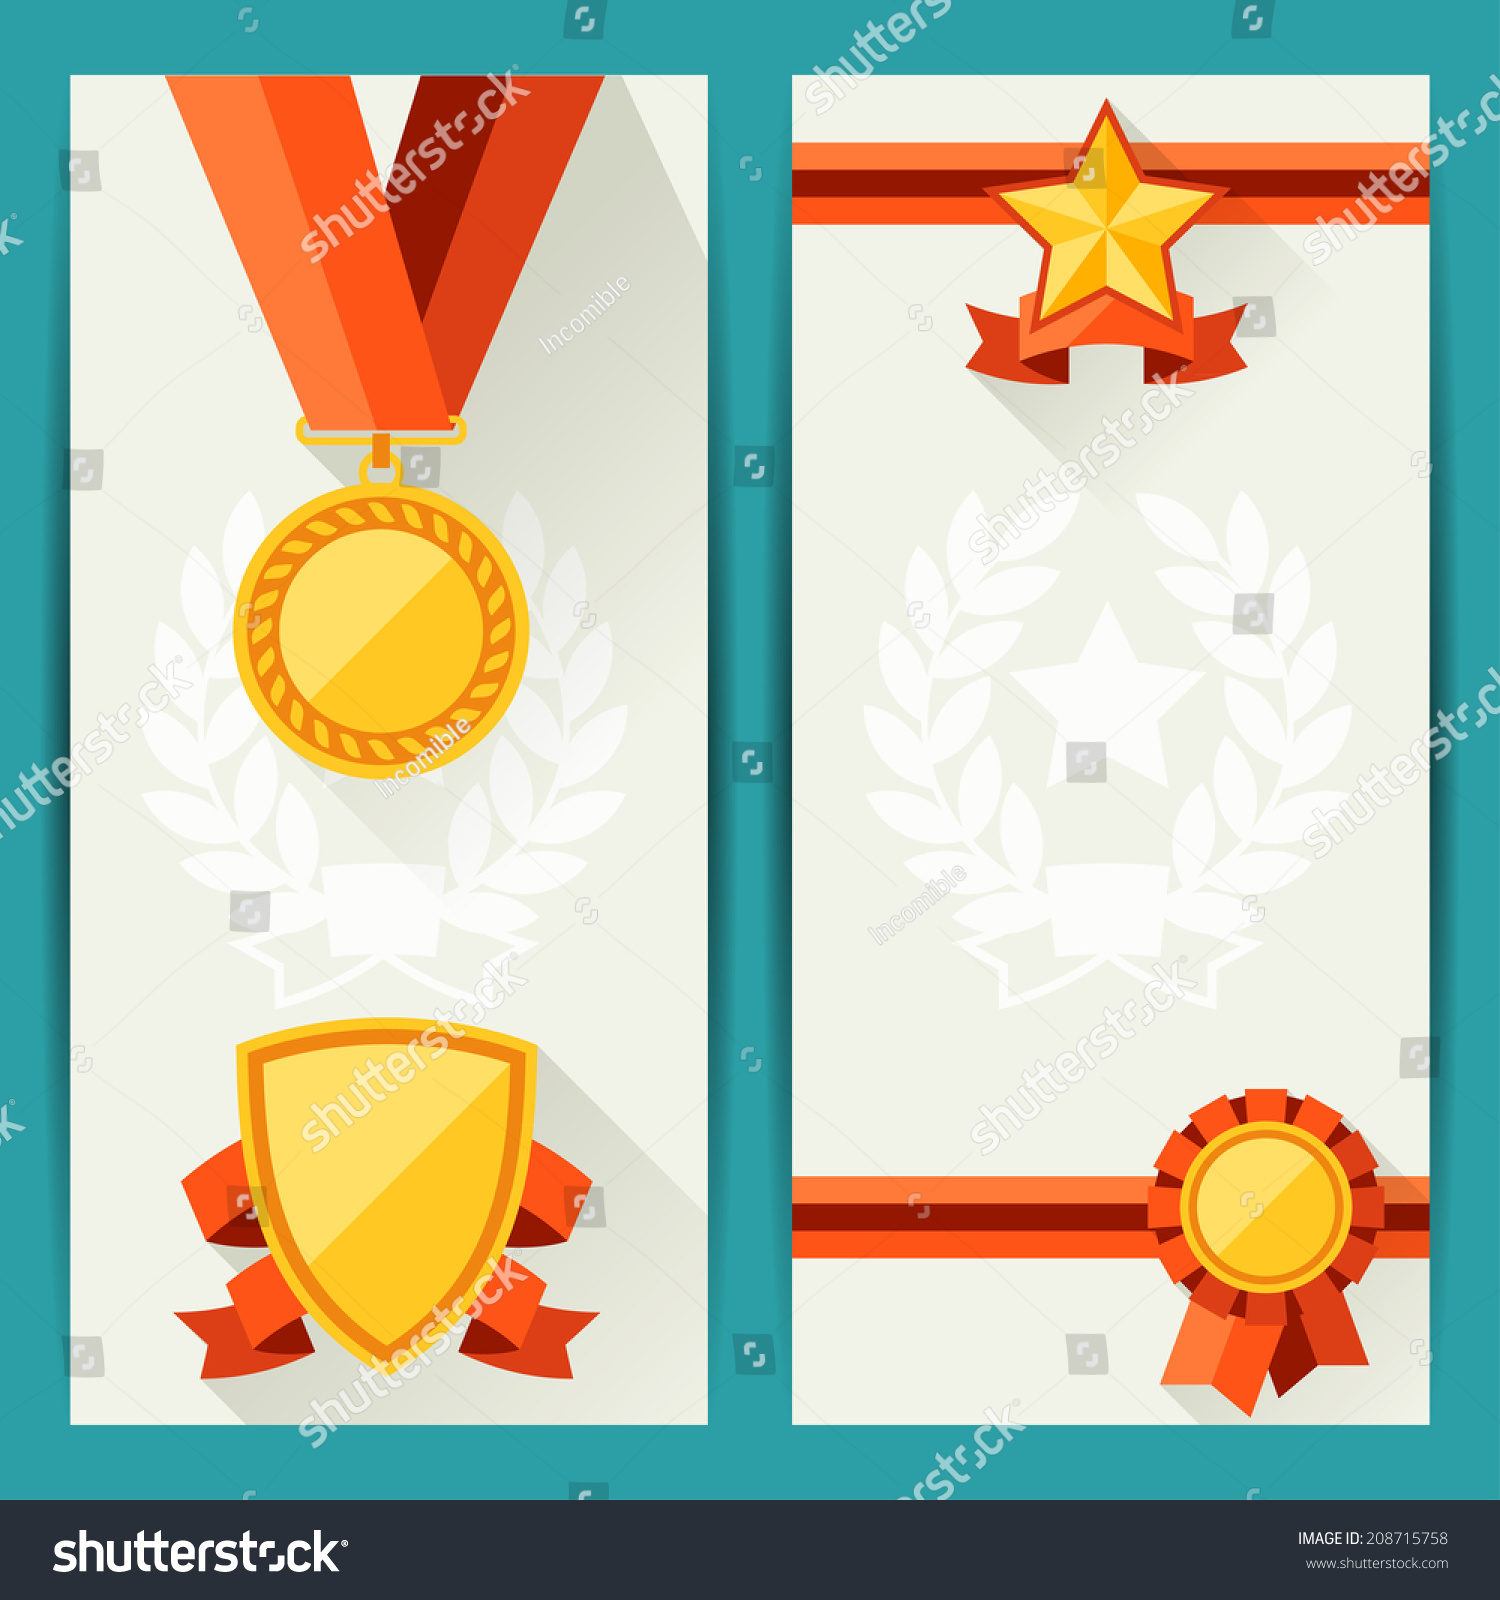 Certificate templates awards flat design style stock vector certificate templates with awards in flat design style yelopaper Images